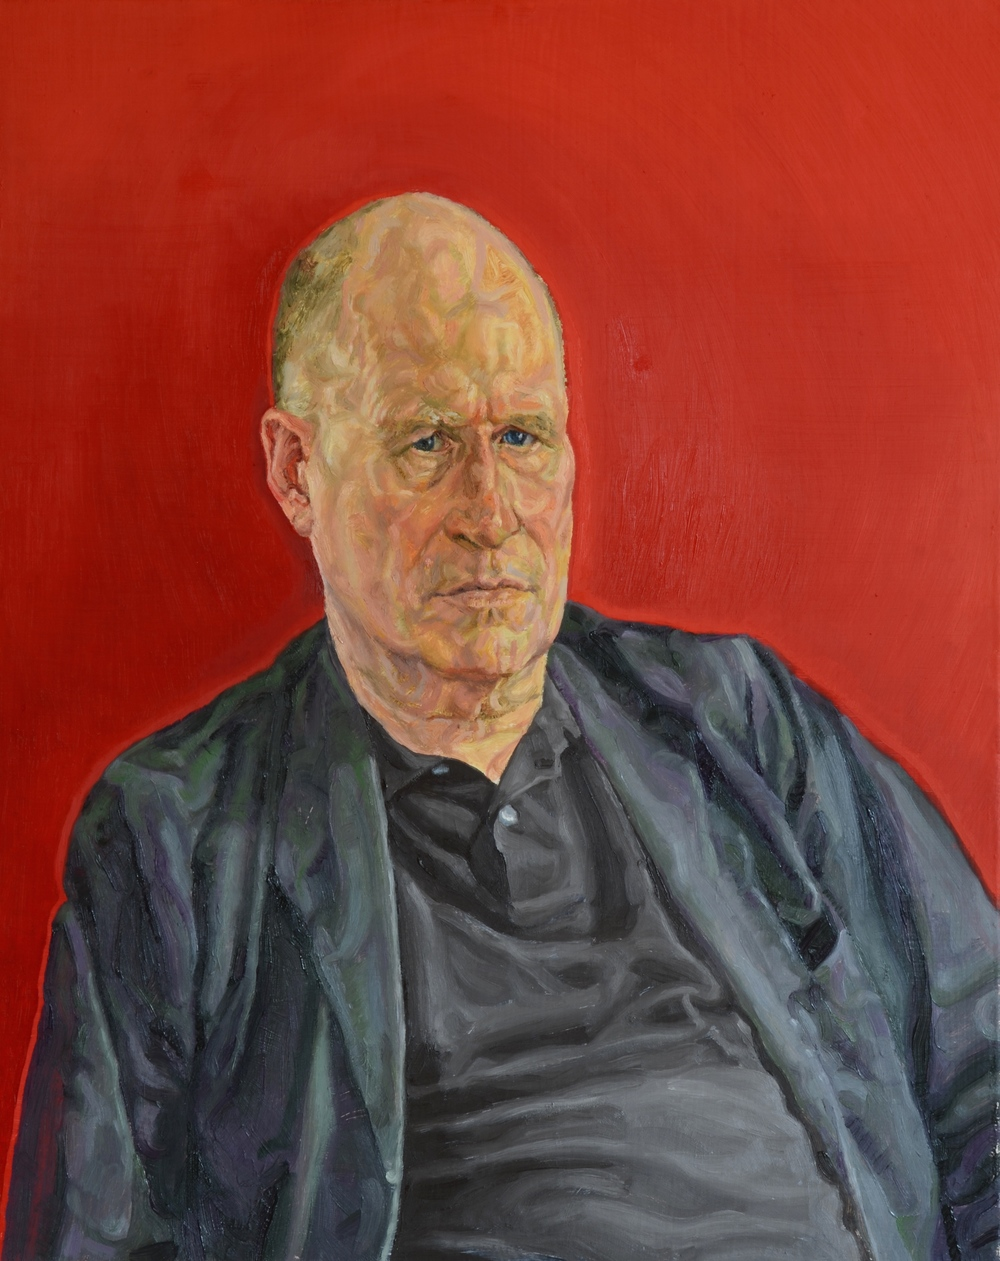 Portrait painted by Charlie Schaffer